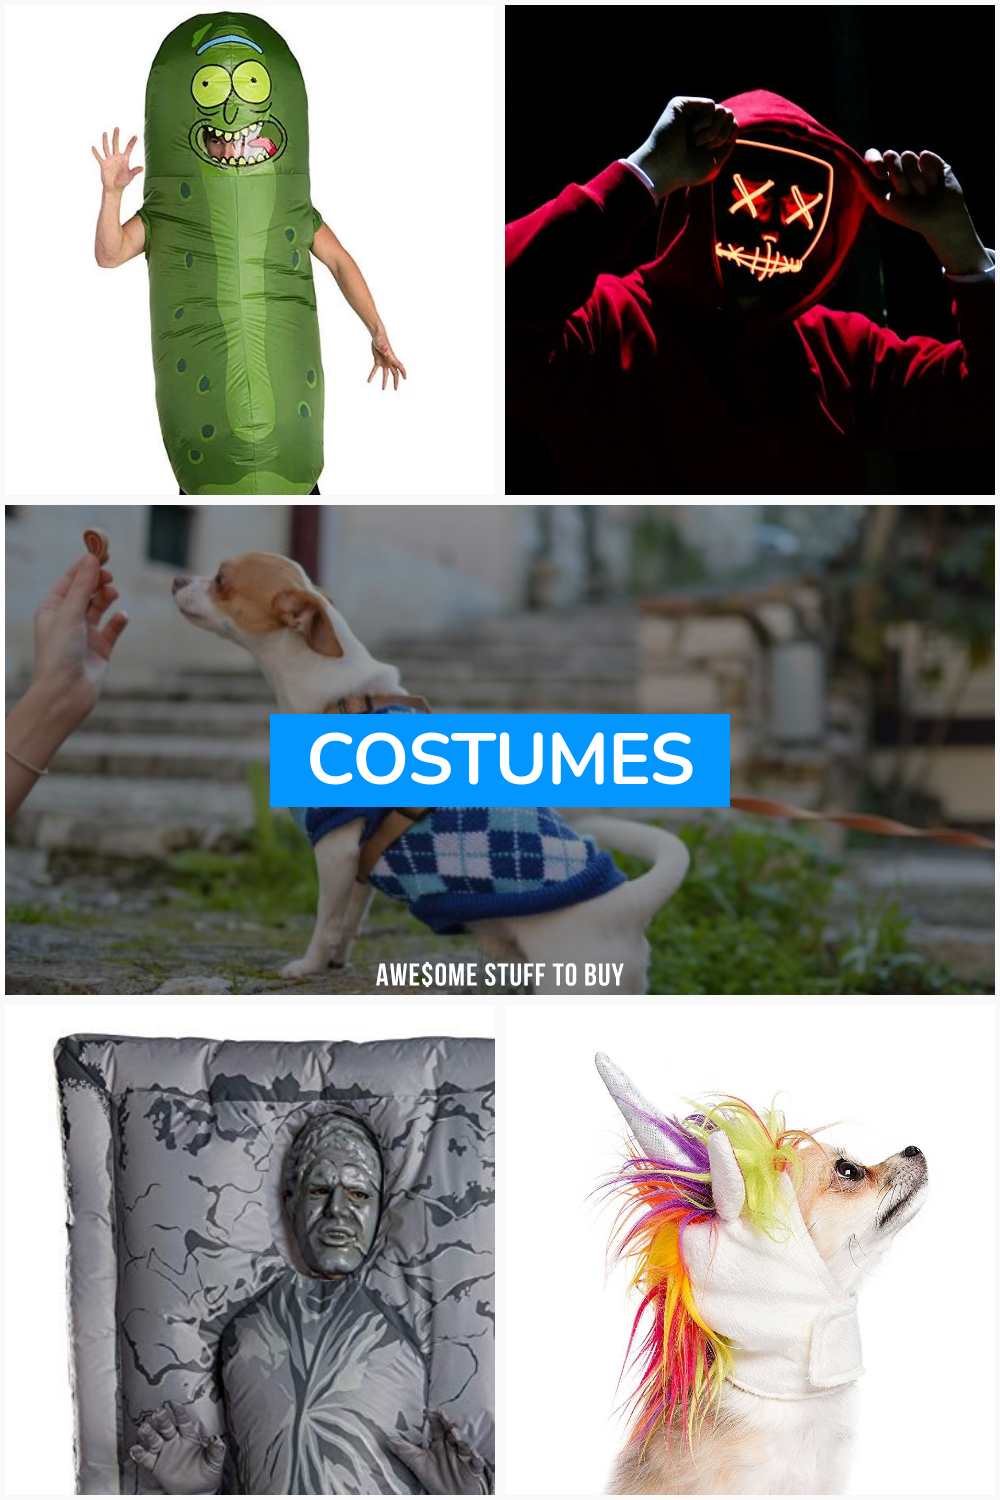 Costumes // Awesome Stuff to Buy